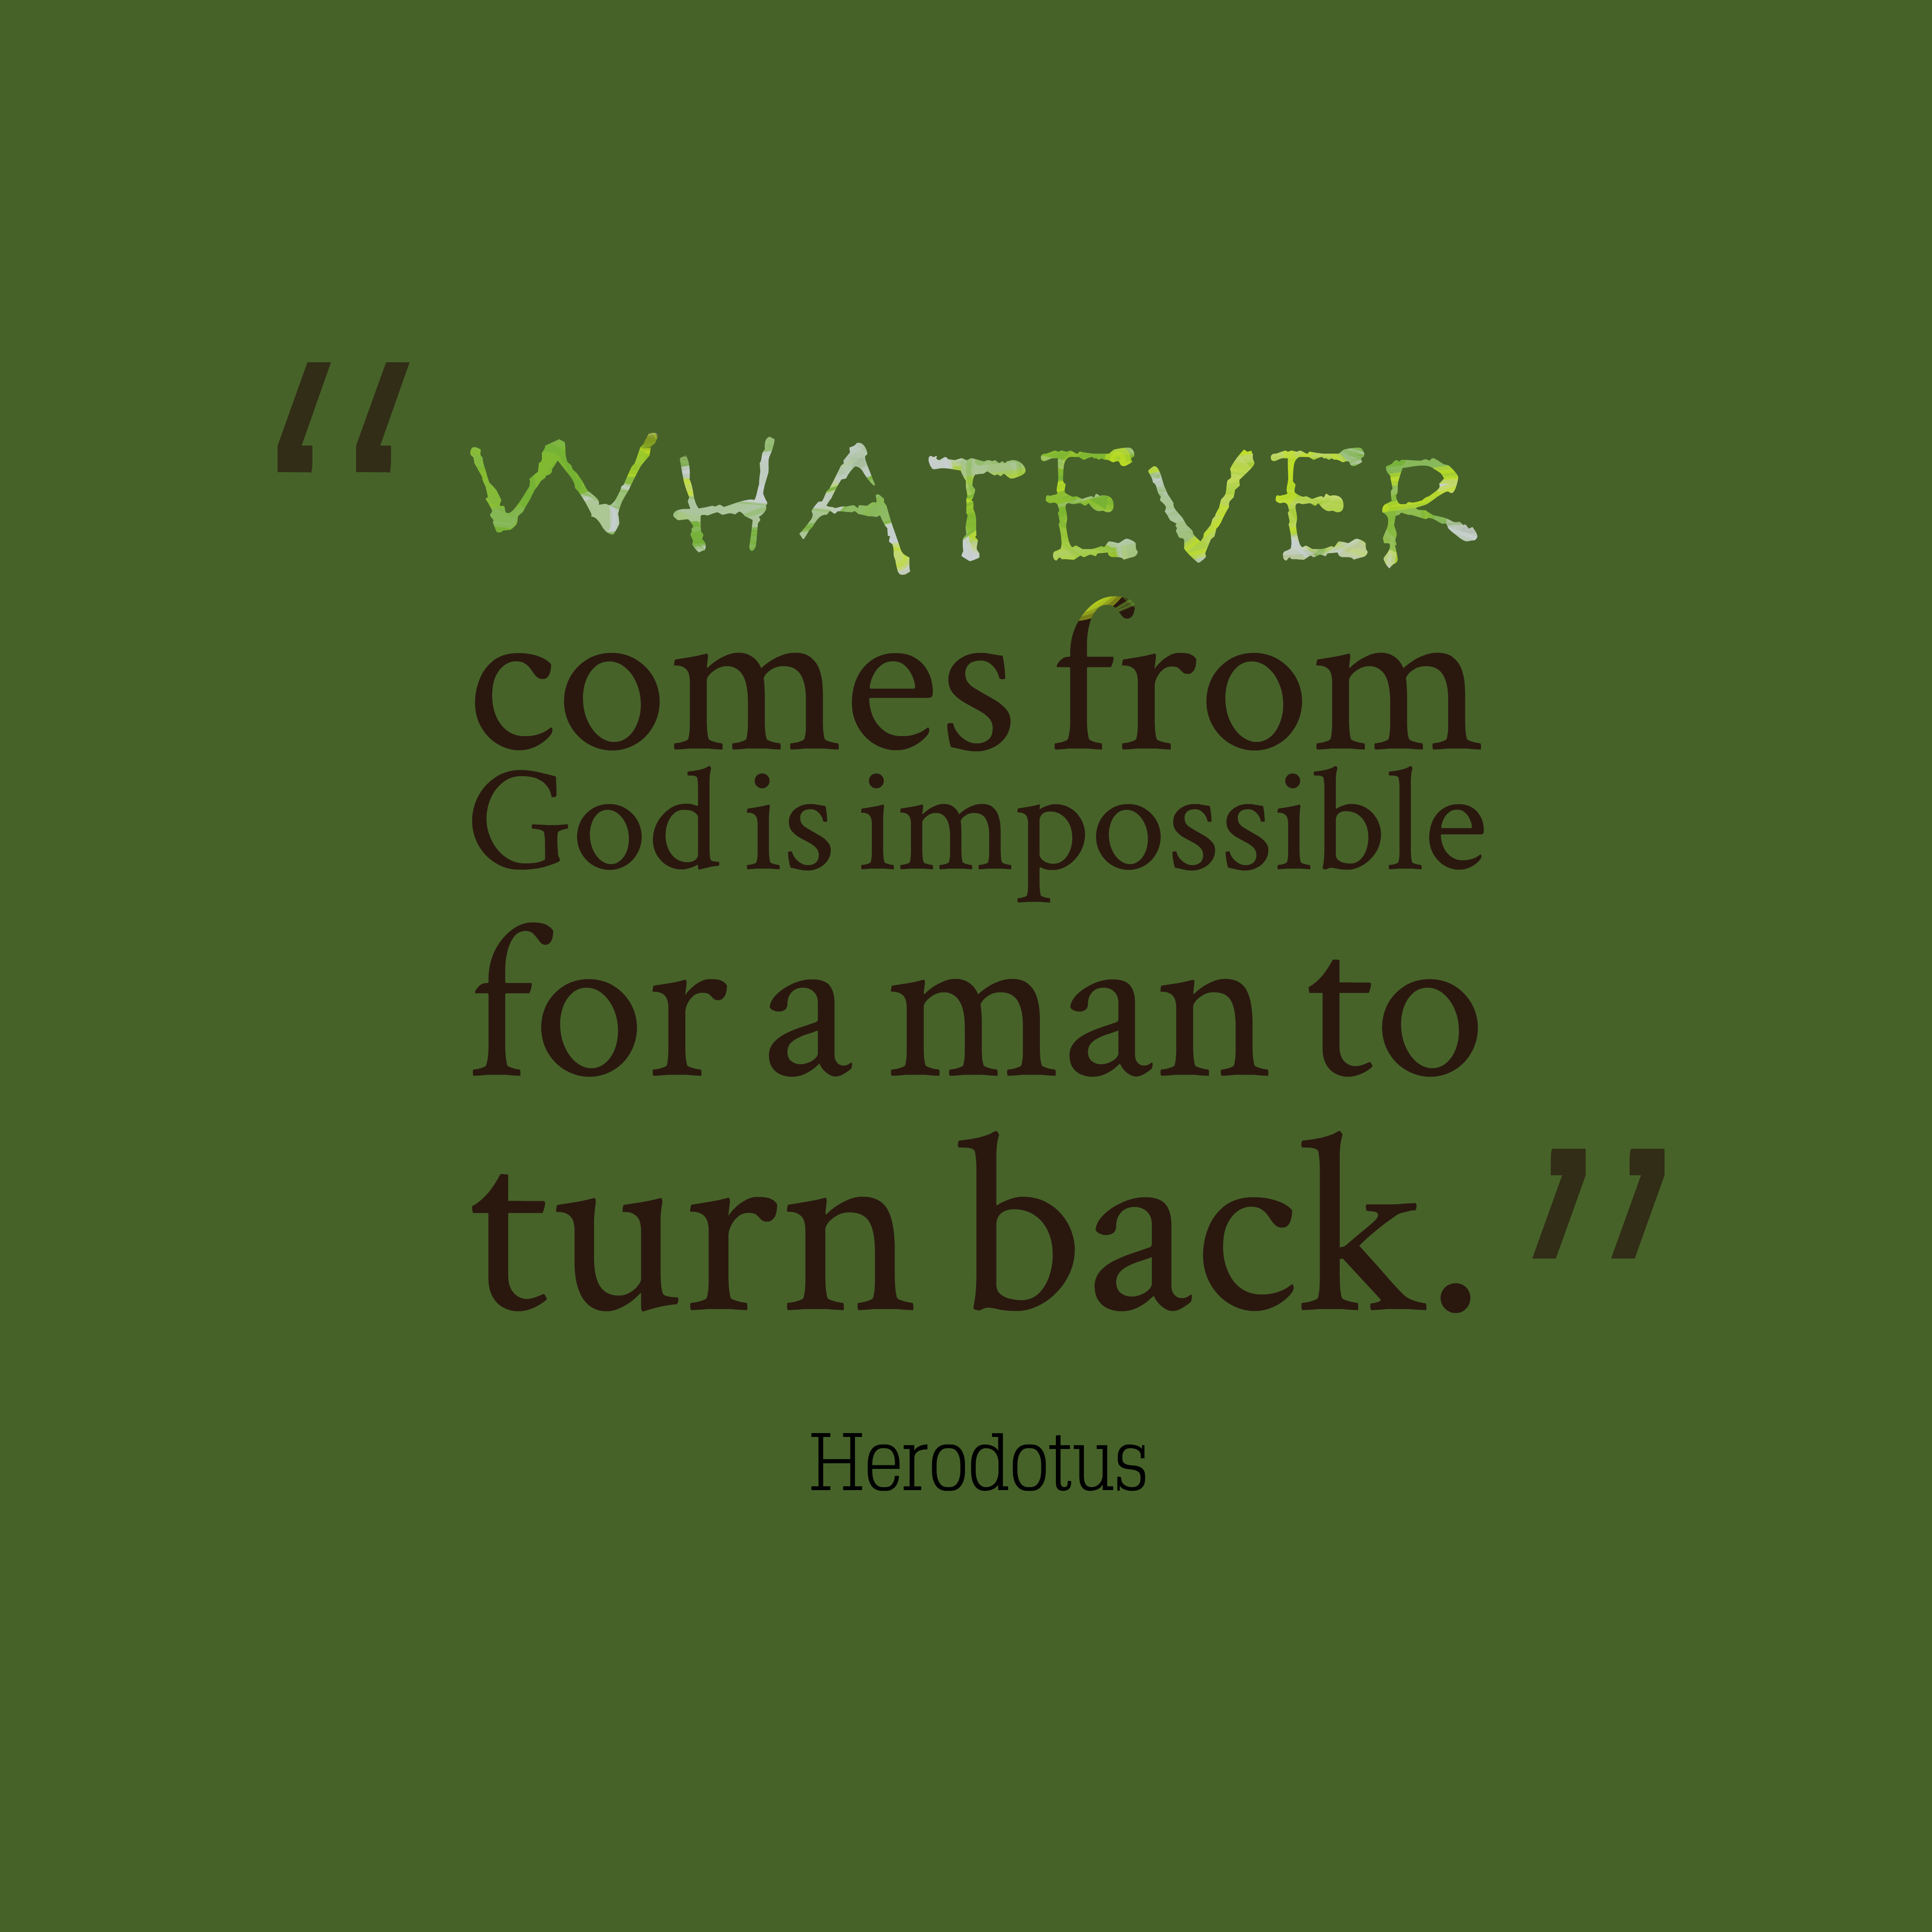 Quotes image of Whatever comes from God is impossible for a man to turn back.